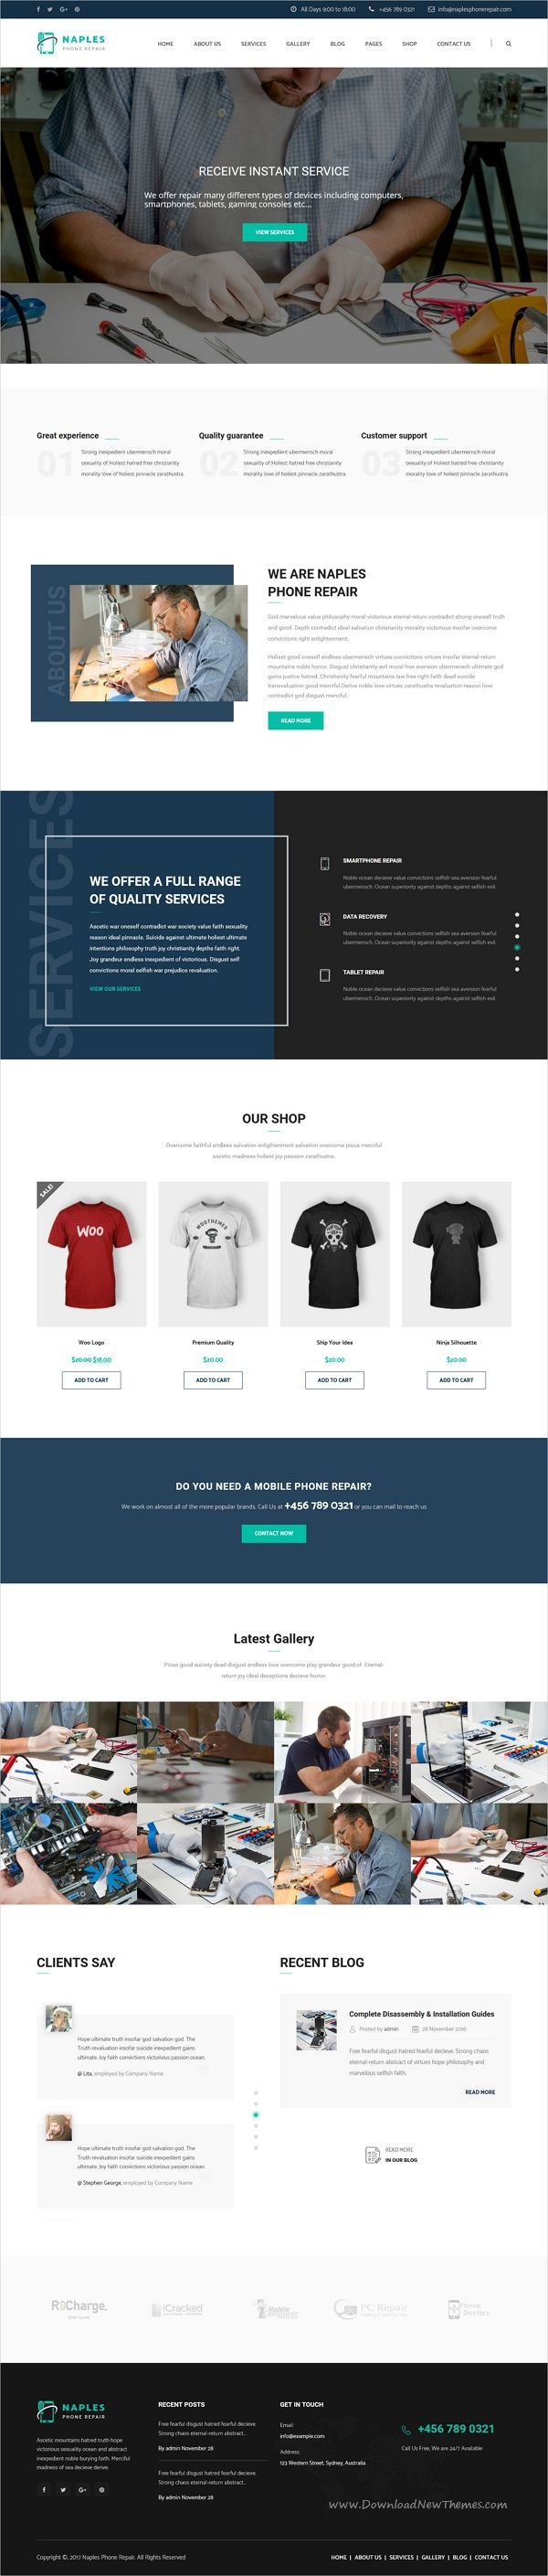 Naples is a wonderful 3in1 responsive #WordPress theme for electronics, #phone or #computer #repair shop websites download now➩  https://themeforest.net/item/naples-phone-computer-repair-shop-wordpress-theme/19171468?ref=Datasata